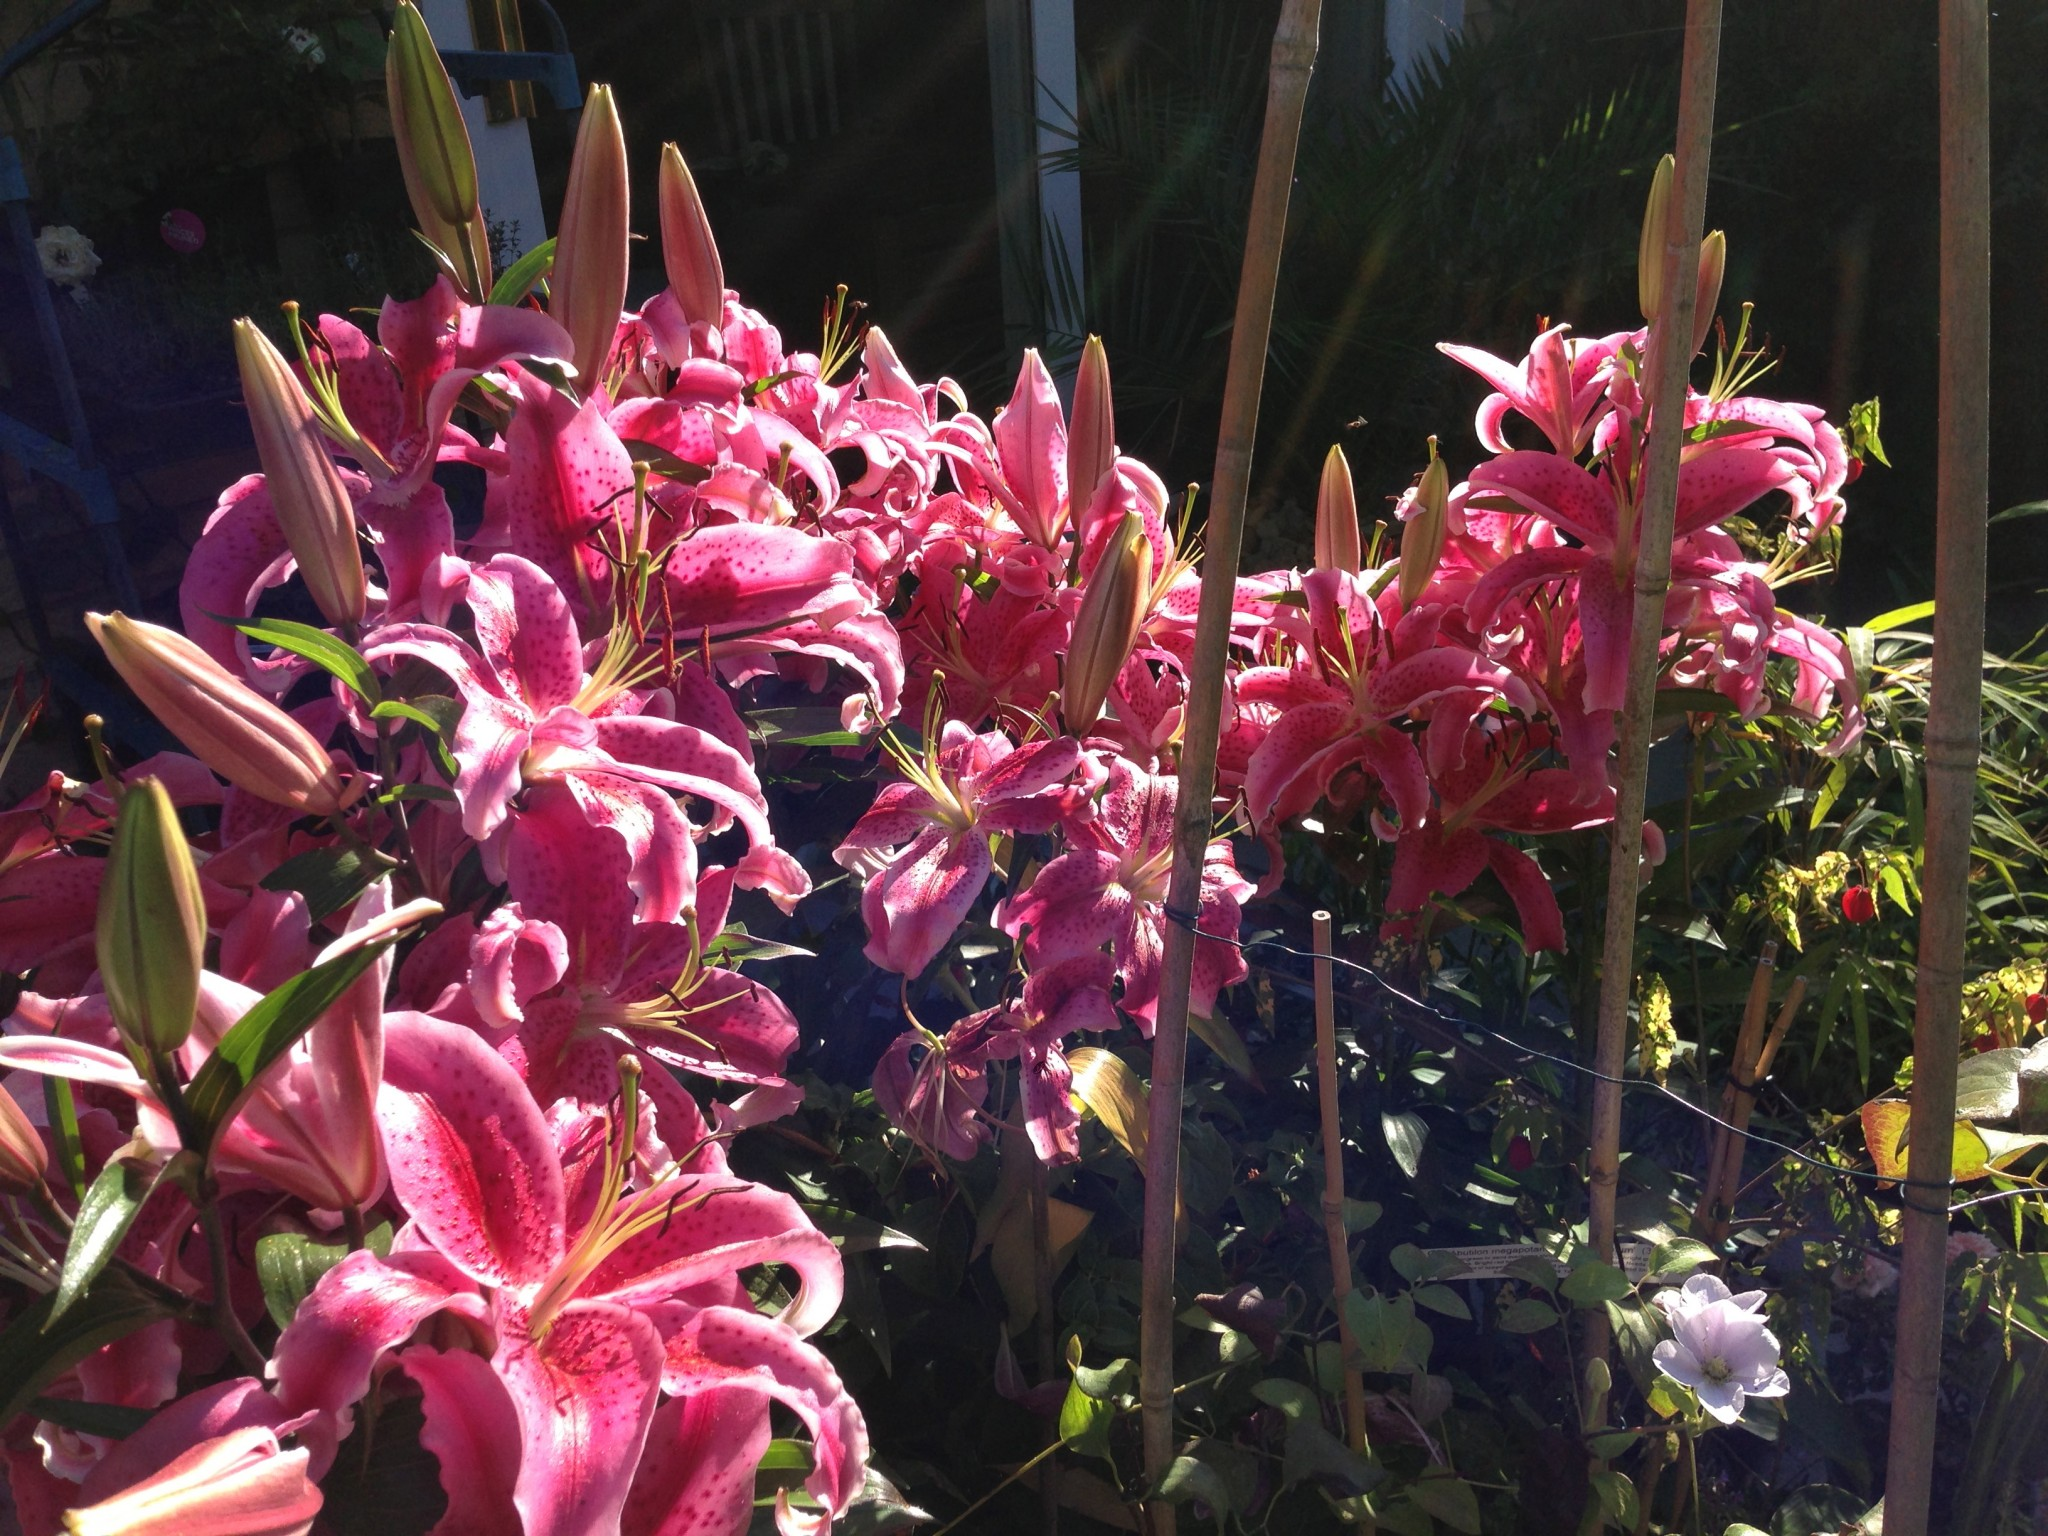 Stargazer Lilies in full flower